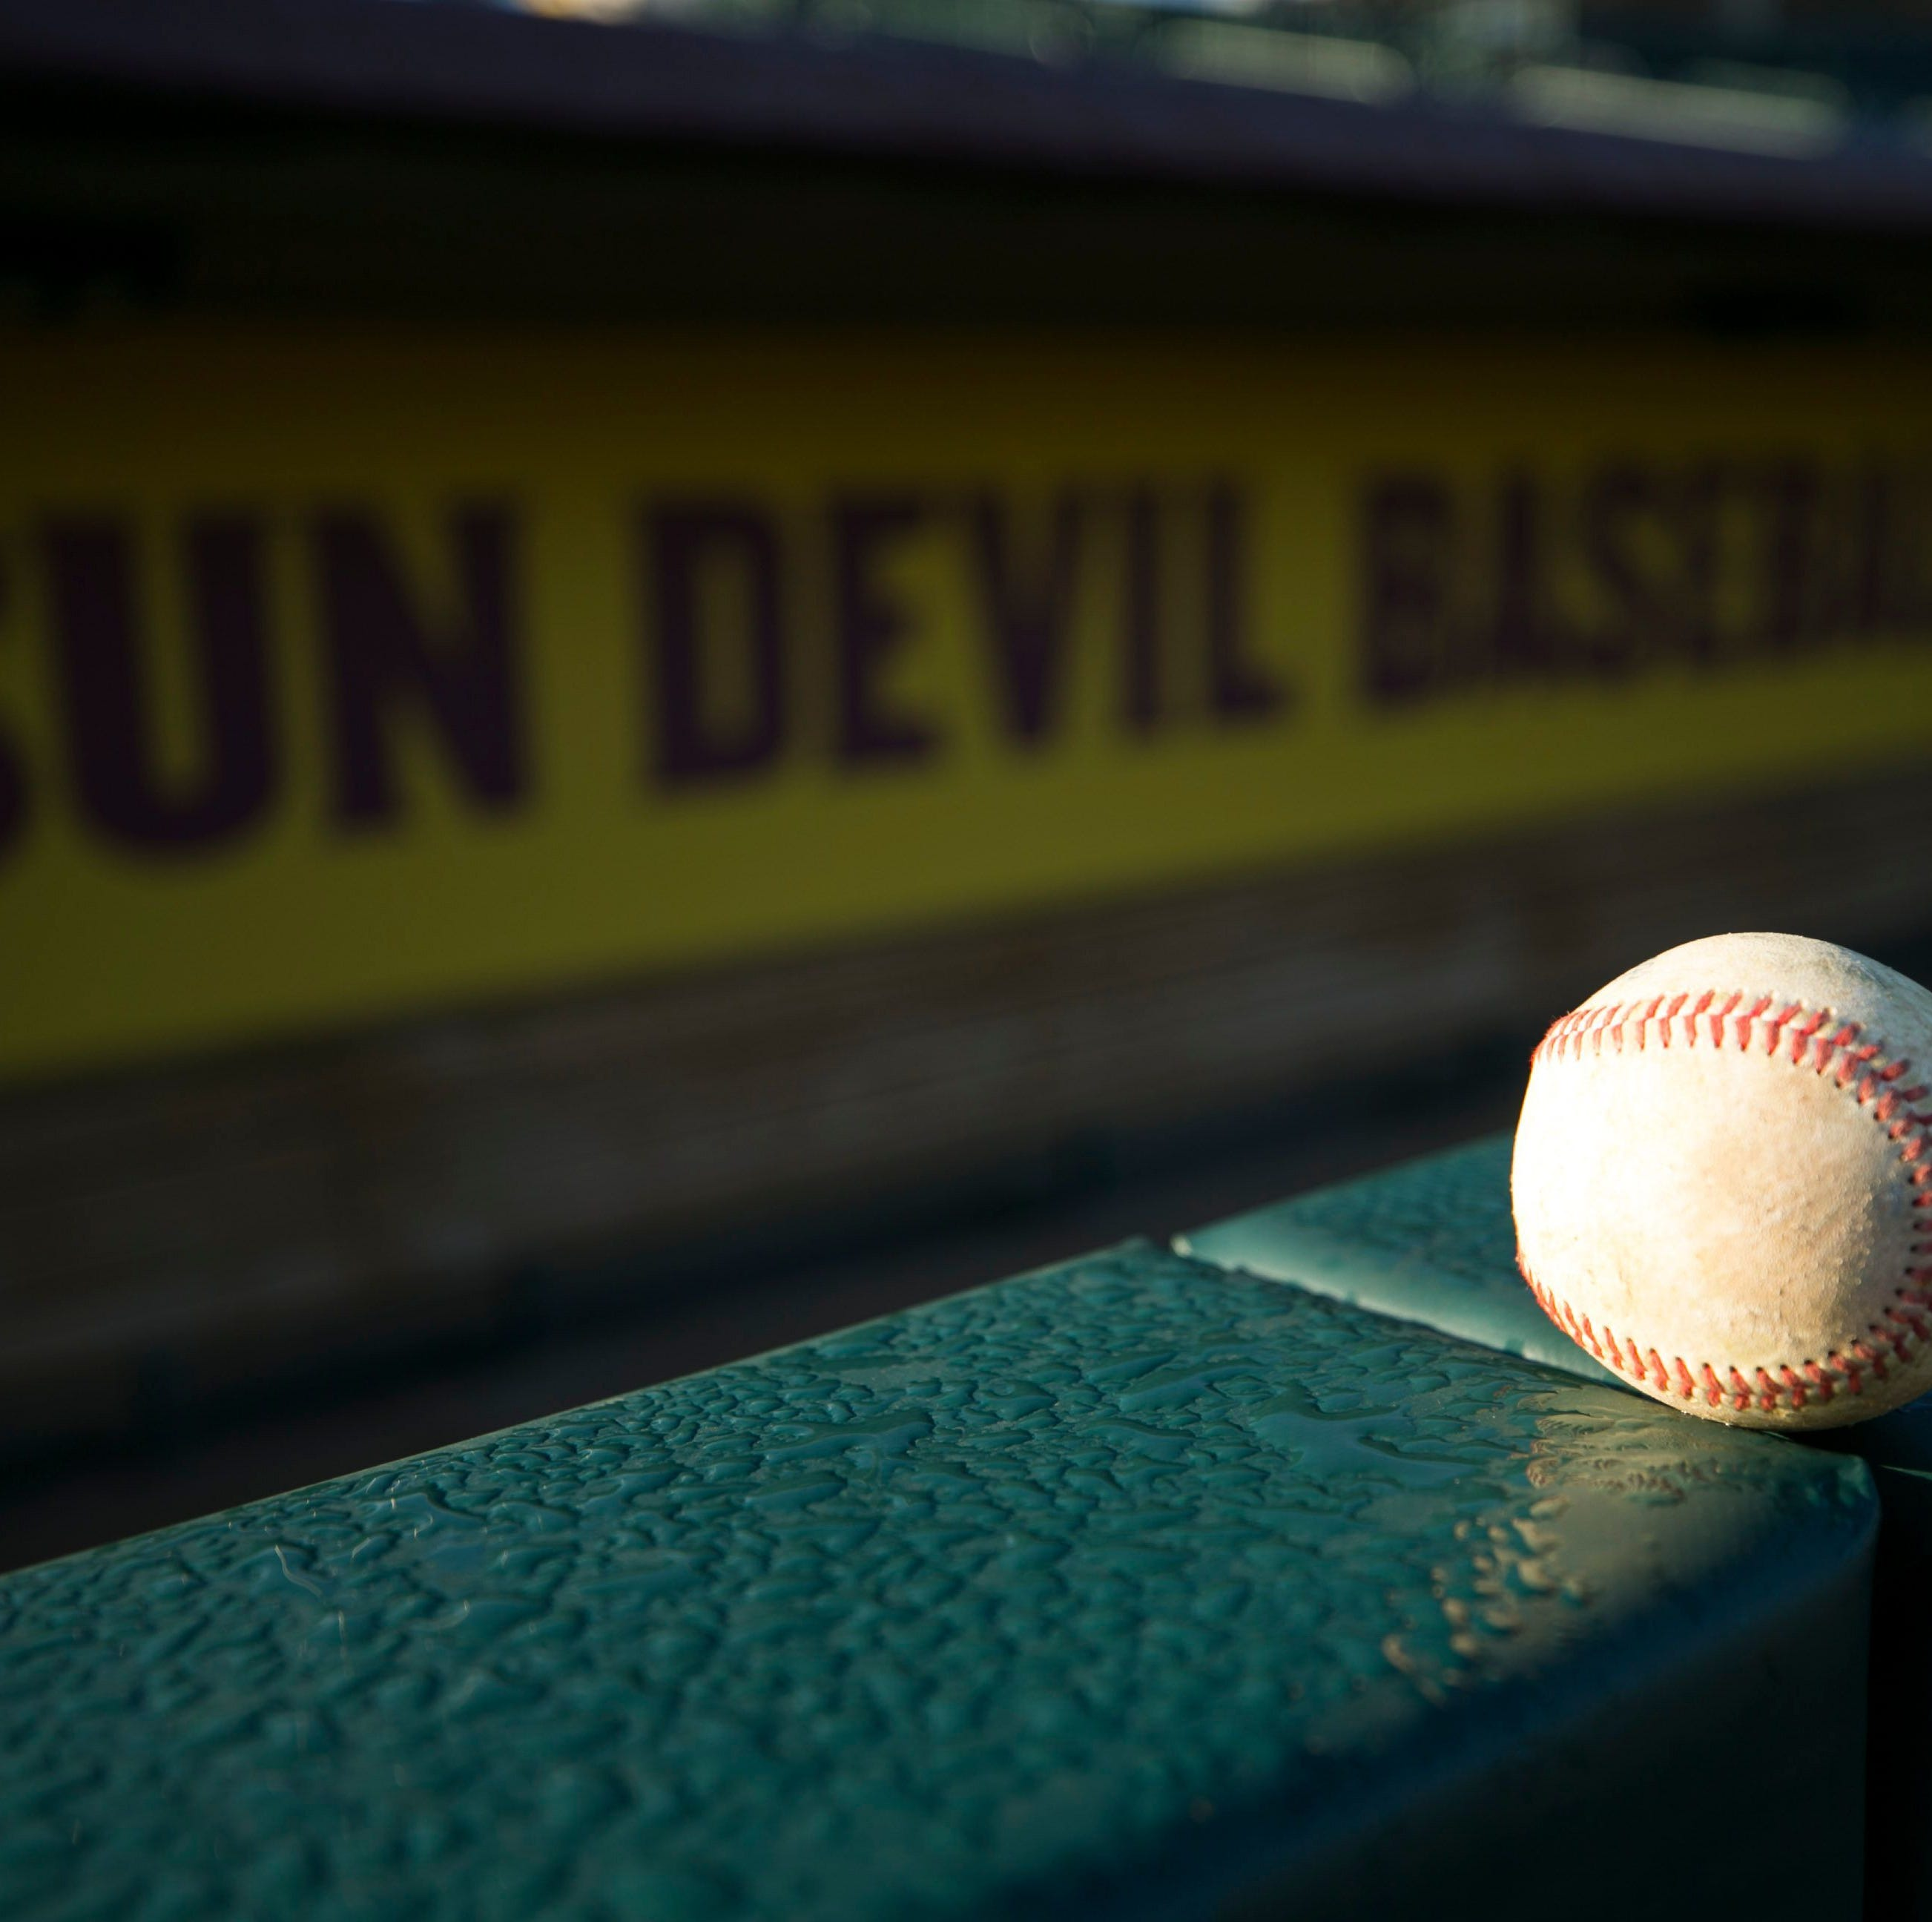 Alec Marsh throws complete game for No. 9 ASU baseball in win over No. 3 Oregon State